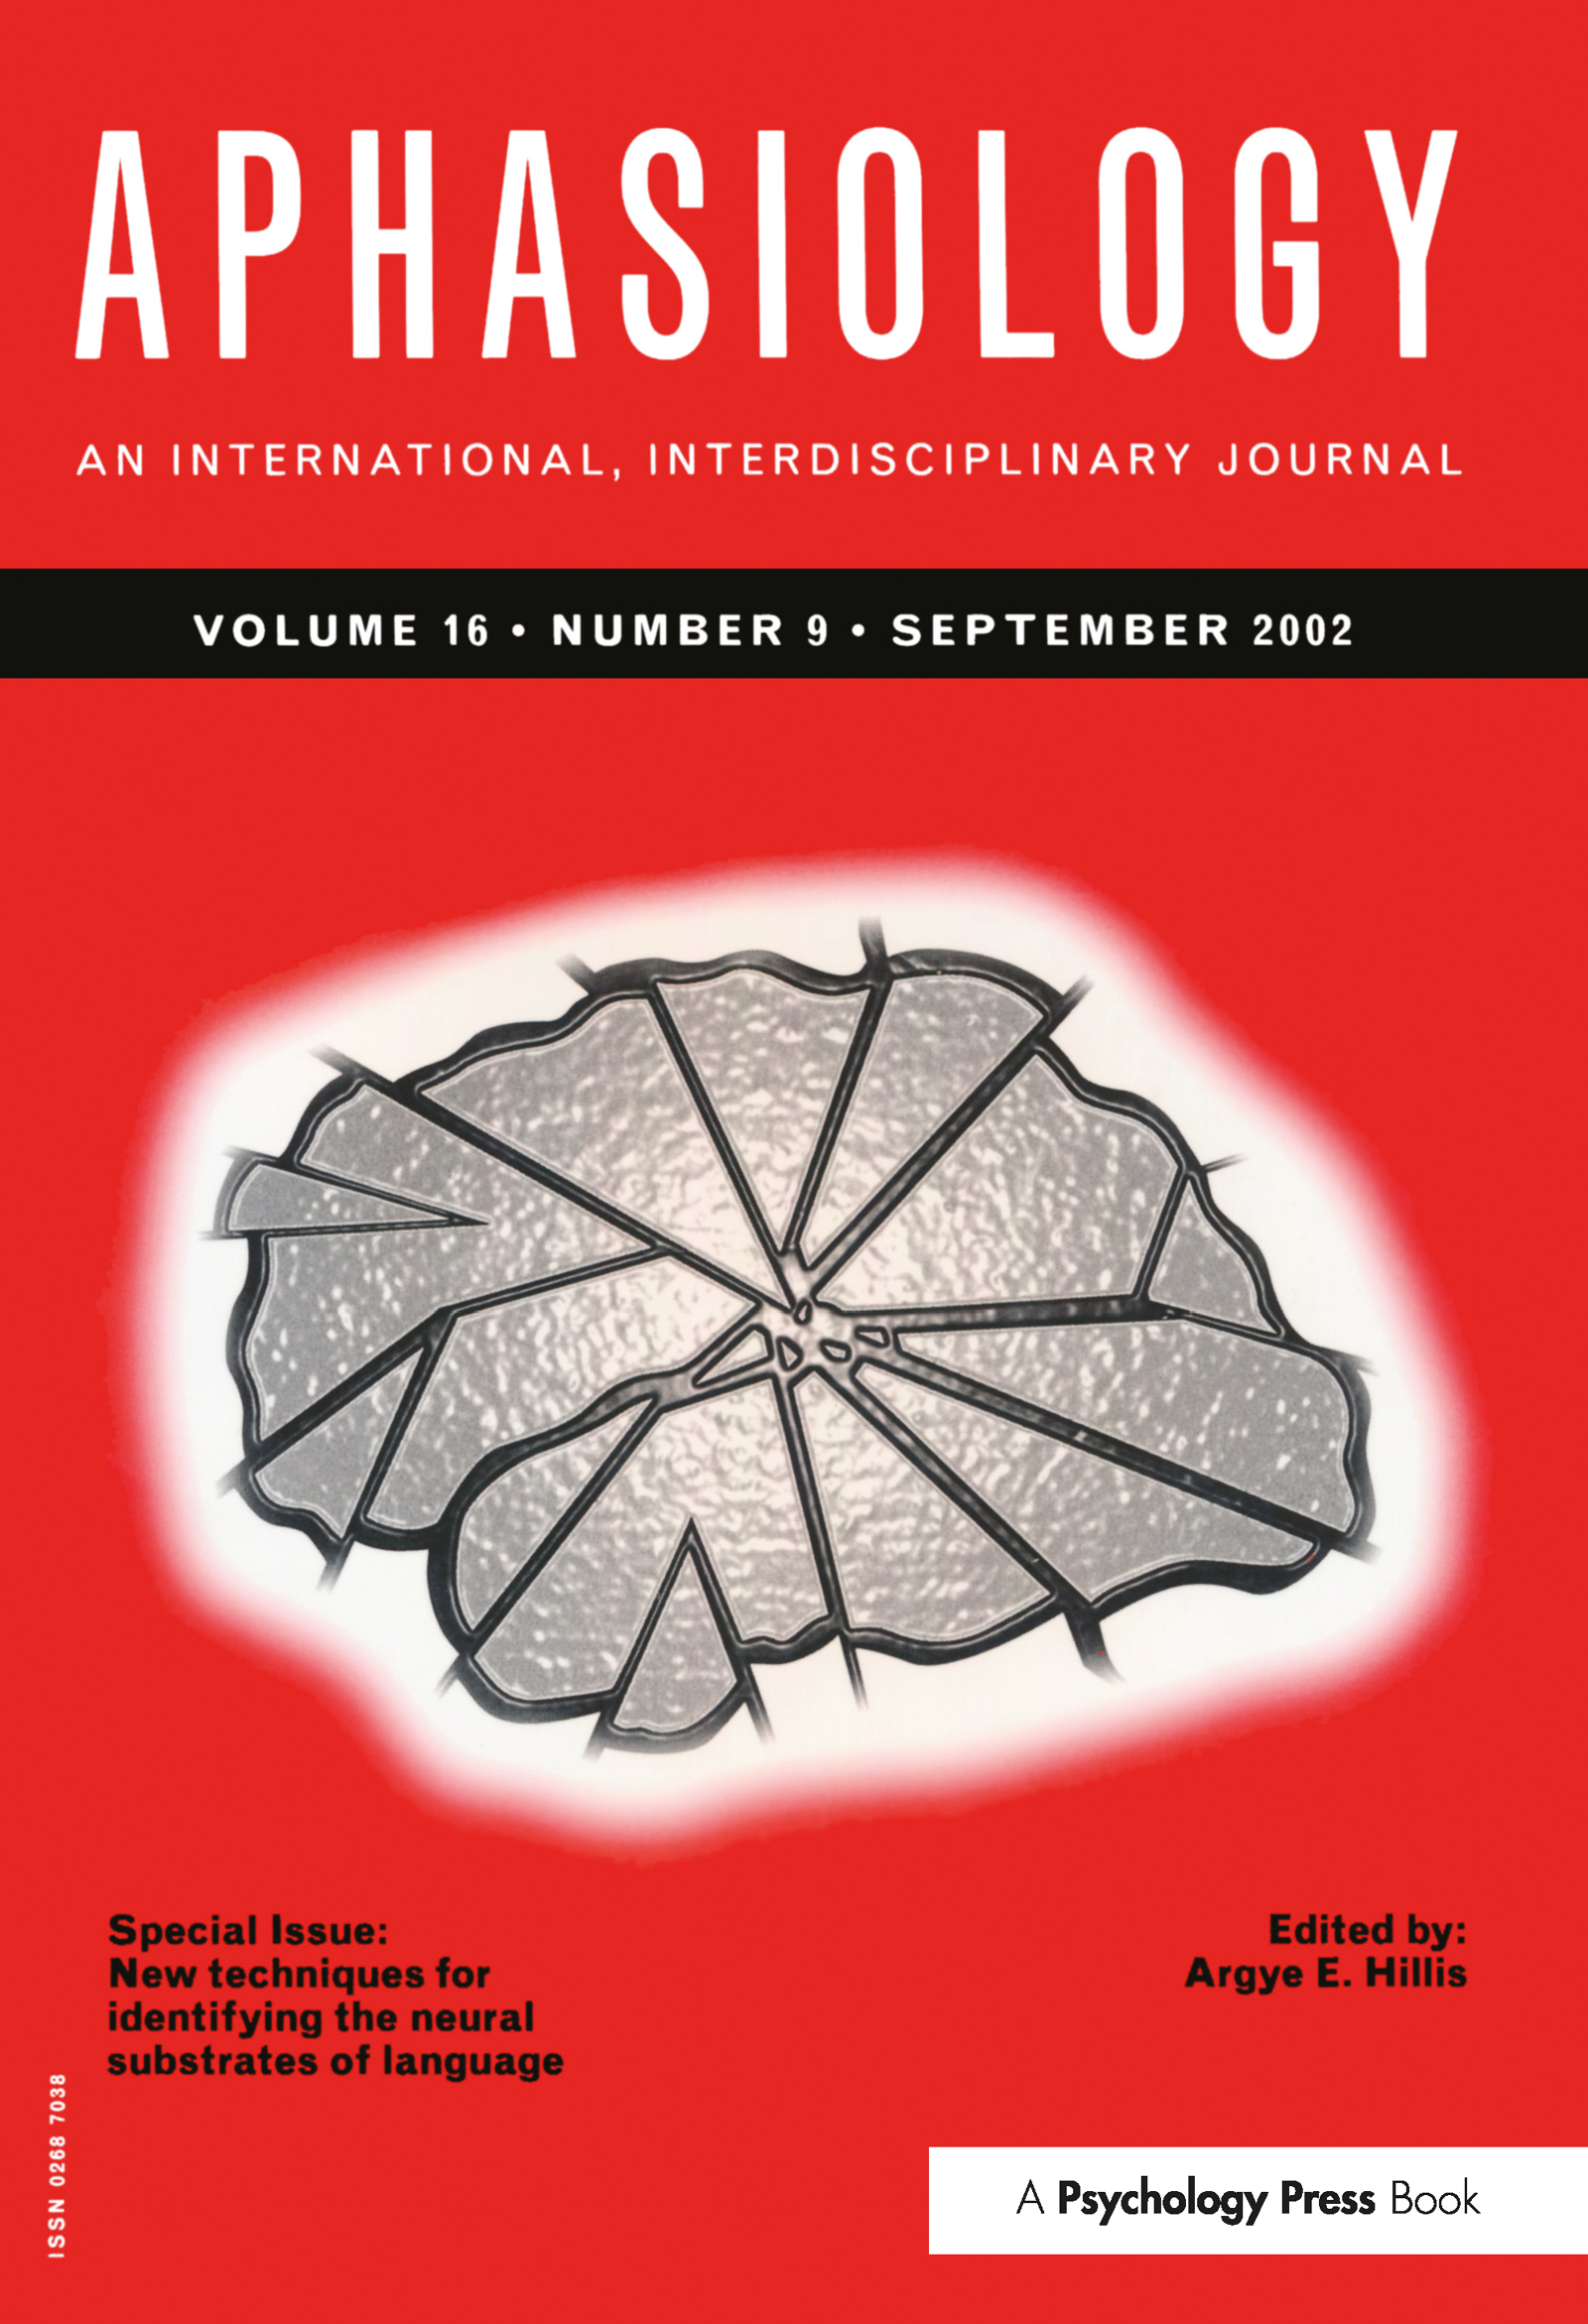 New Techniques for Identifying the Neural Substrates of Language: A Special Issue of Aphasiology (Paperback) book cover